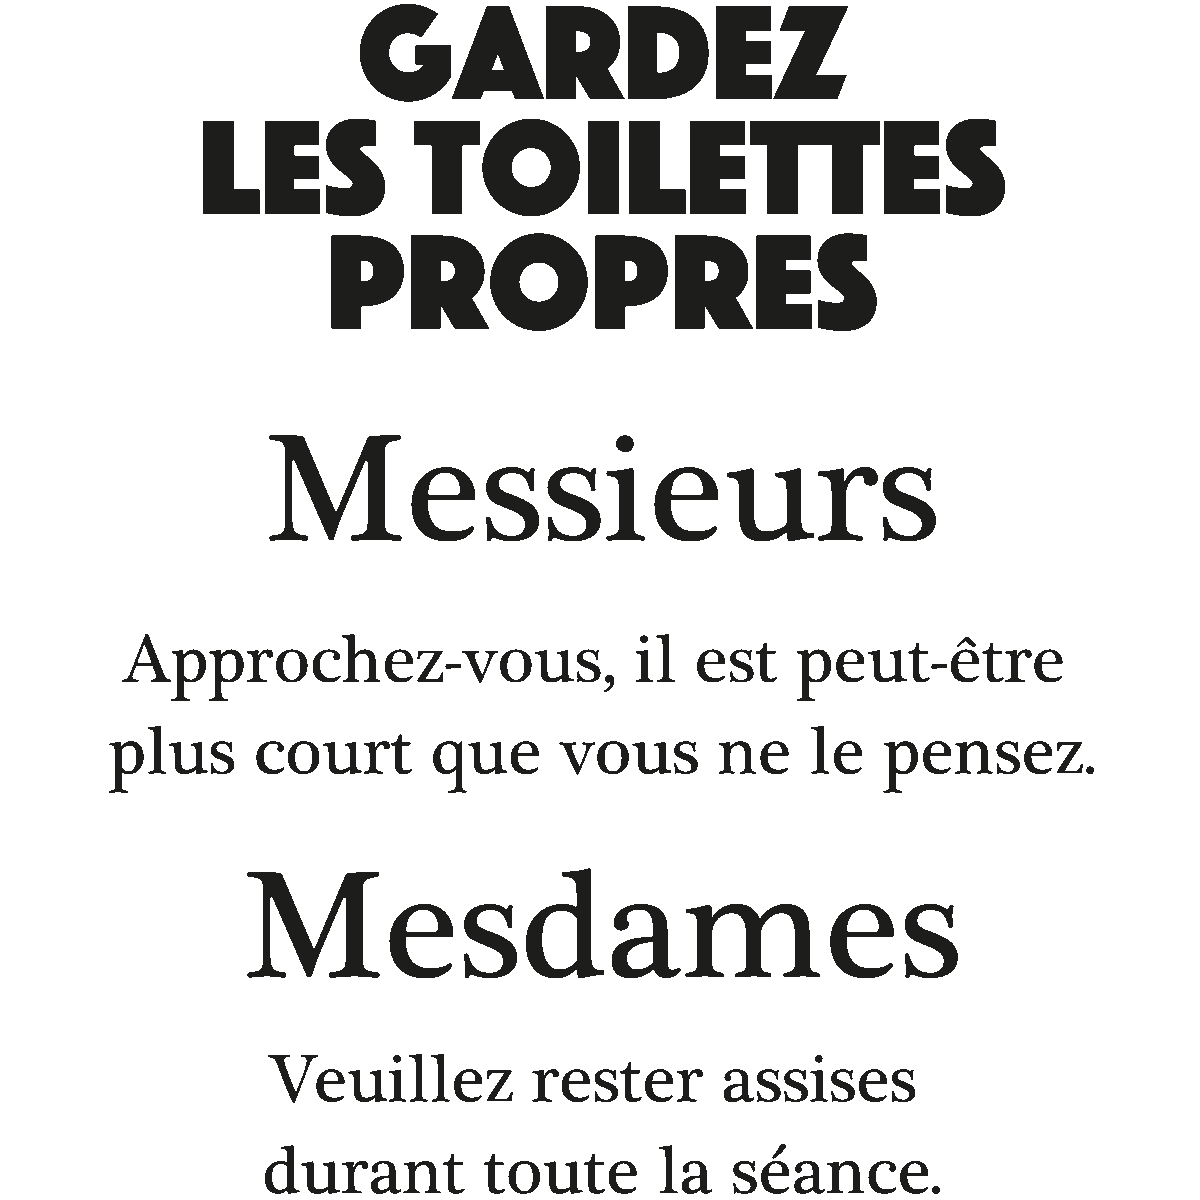 sticker citation wc gardez les toilettes propres stickers citations fran ais ambiance sticker. Black Bedroom Furniture Sets. Home Design Ideas